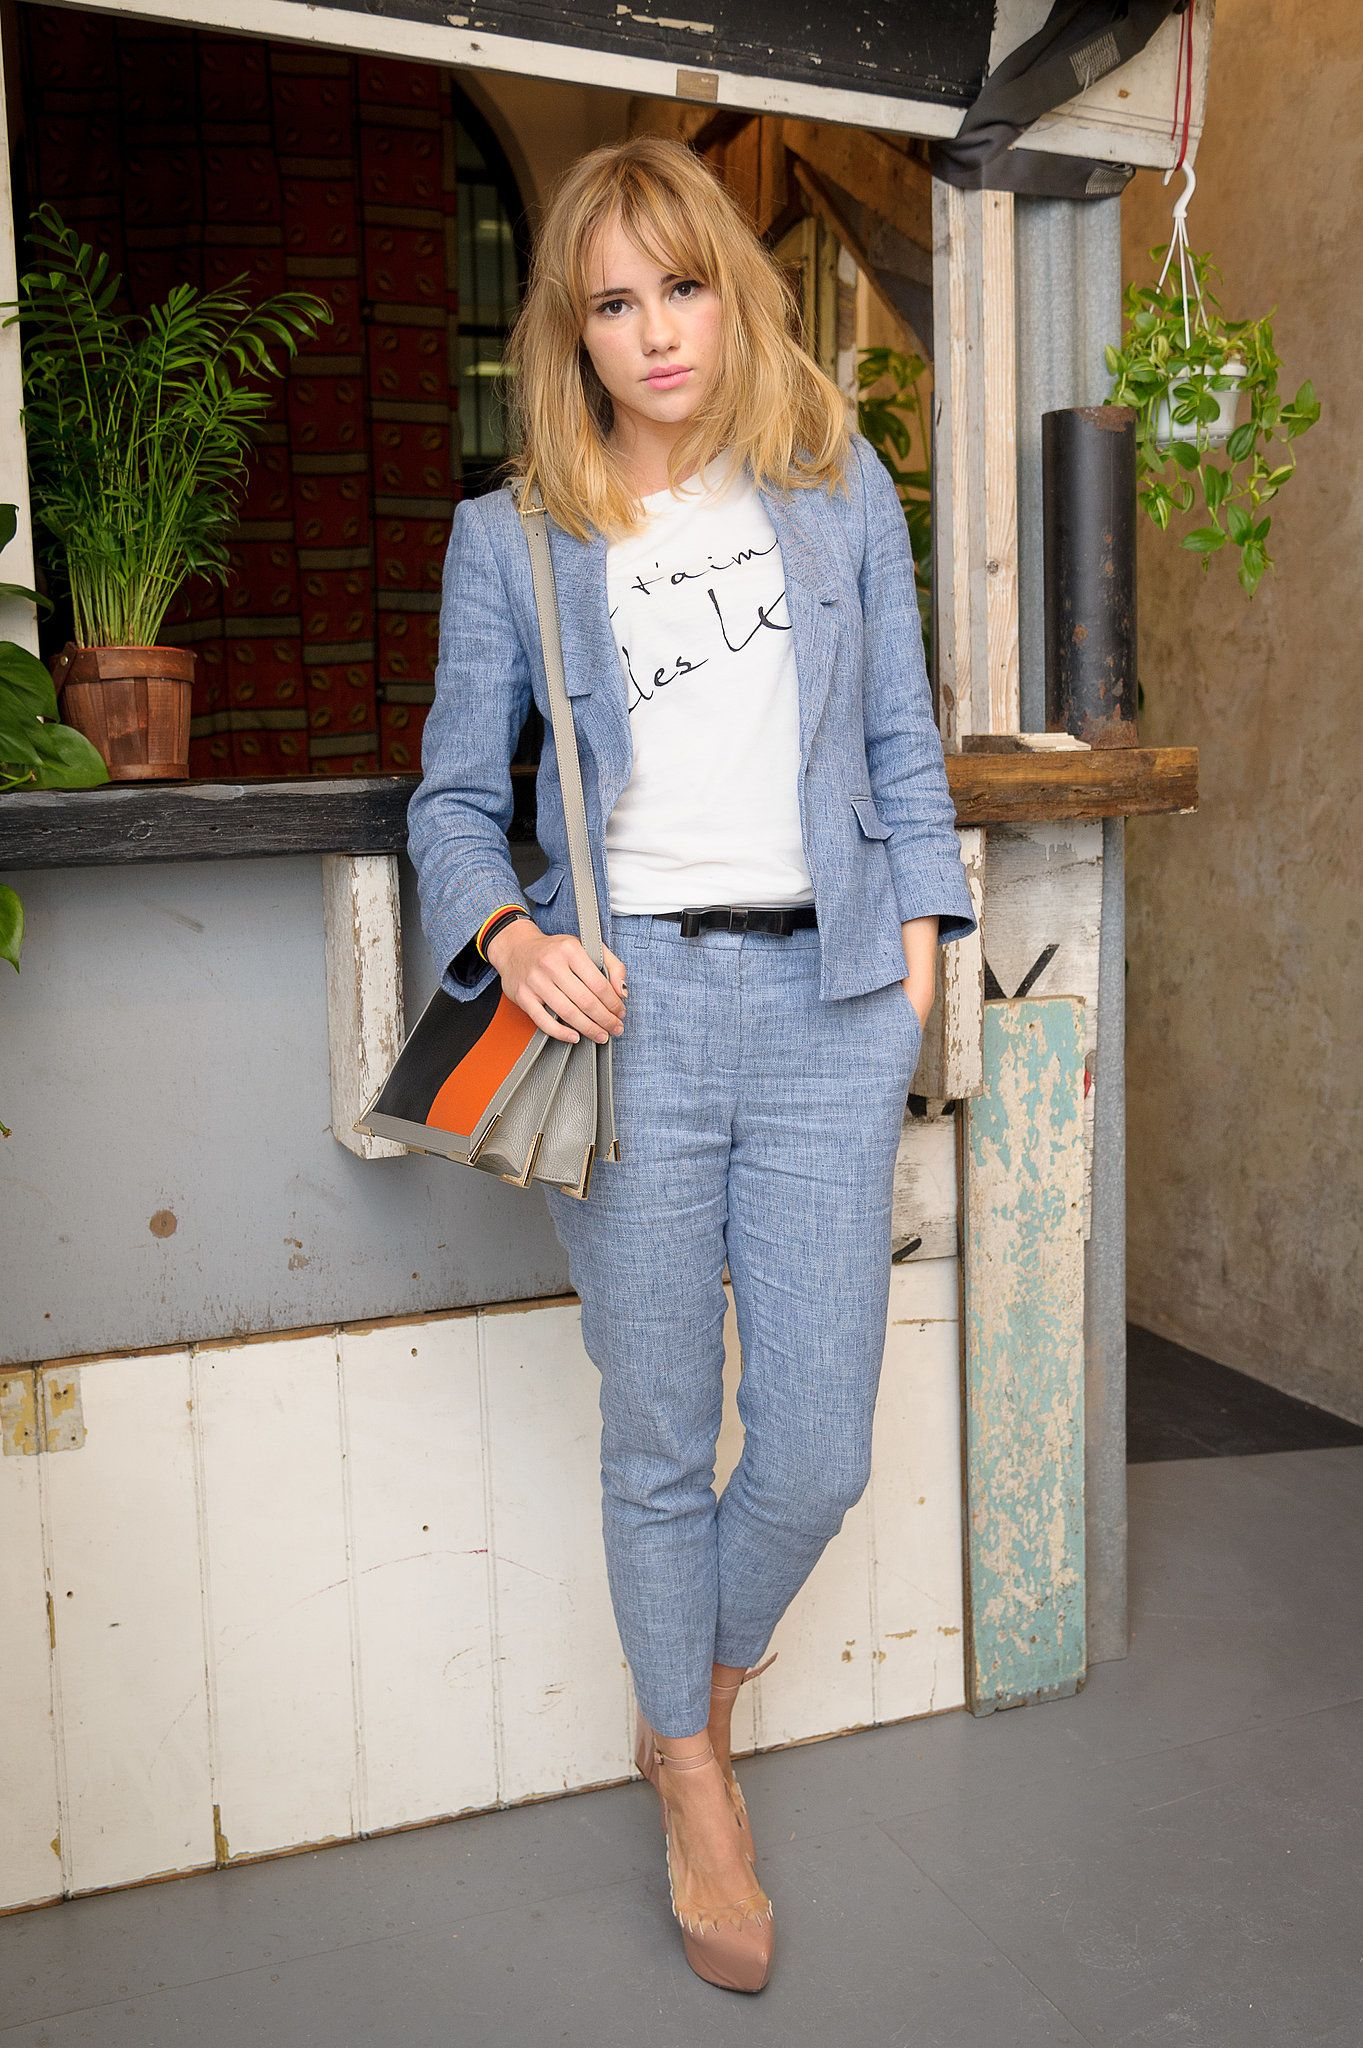 Mastering the art of the fashion-blogger pose, Suki showed off her love of sets back in May 2012 at a London party.